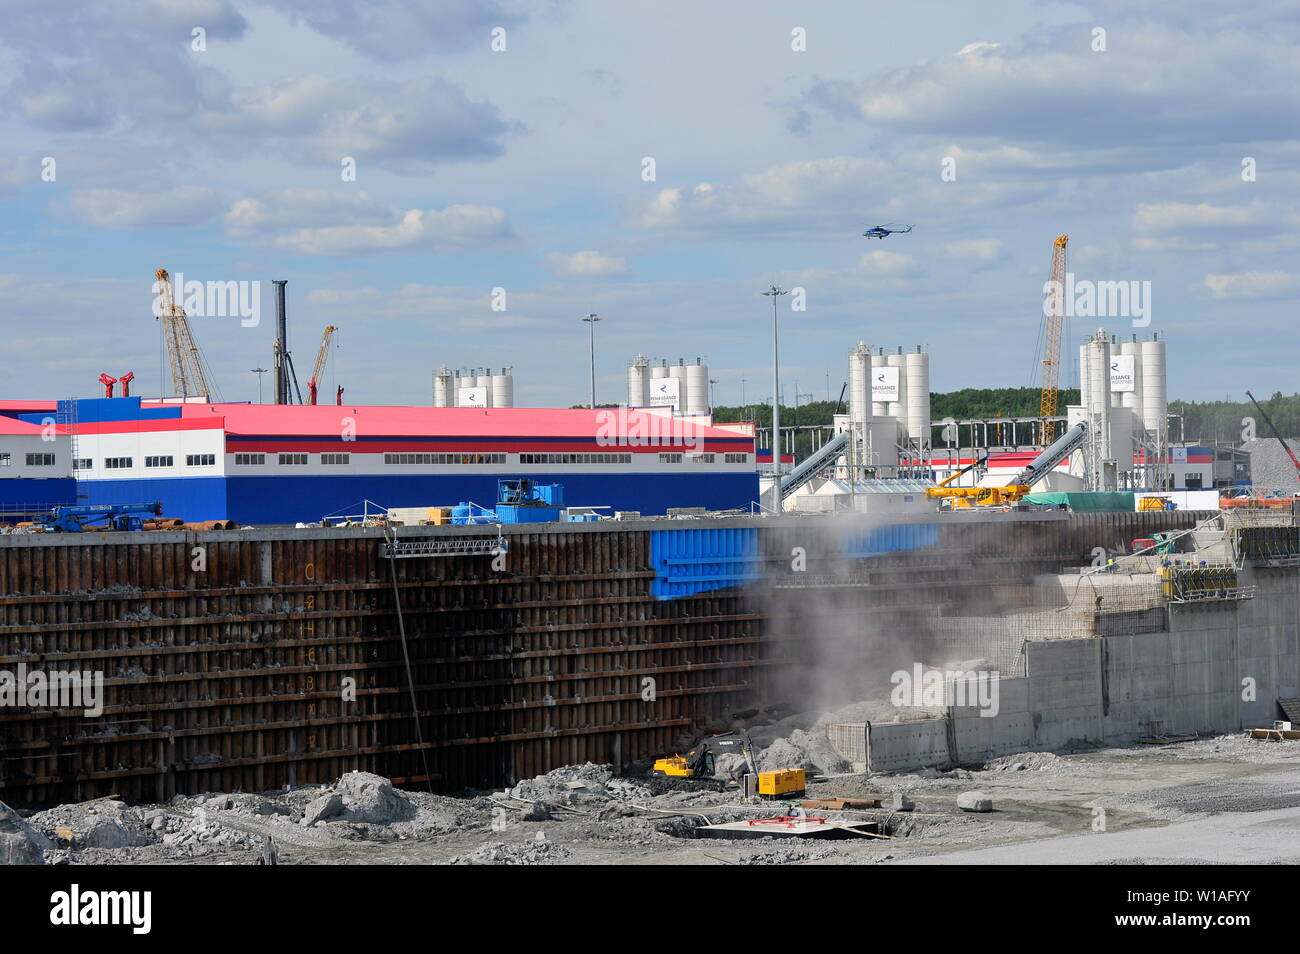 Russia. 01st July, 2019. MURMANSK REGION, RUSSIA - JULY 1, 2019: The construction site of a dry dock, in the village of Belokamenka, Murmansk Region; the construction site is part of Novatek's Kola Shipyard (also known as the Construction Yard for Large-Scale Offshore Structures), which is currently under construction on the shore of Kola Bay, some 12km north of the port of Murmansk, on Russia's Arctic coast. Lev Fedoseyev/TASS Credit: ITAR-TASS News Agency/Alamy Live News - Stock Image